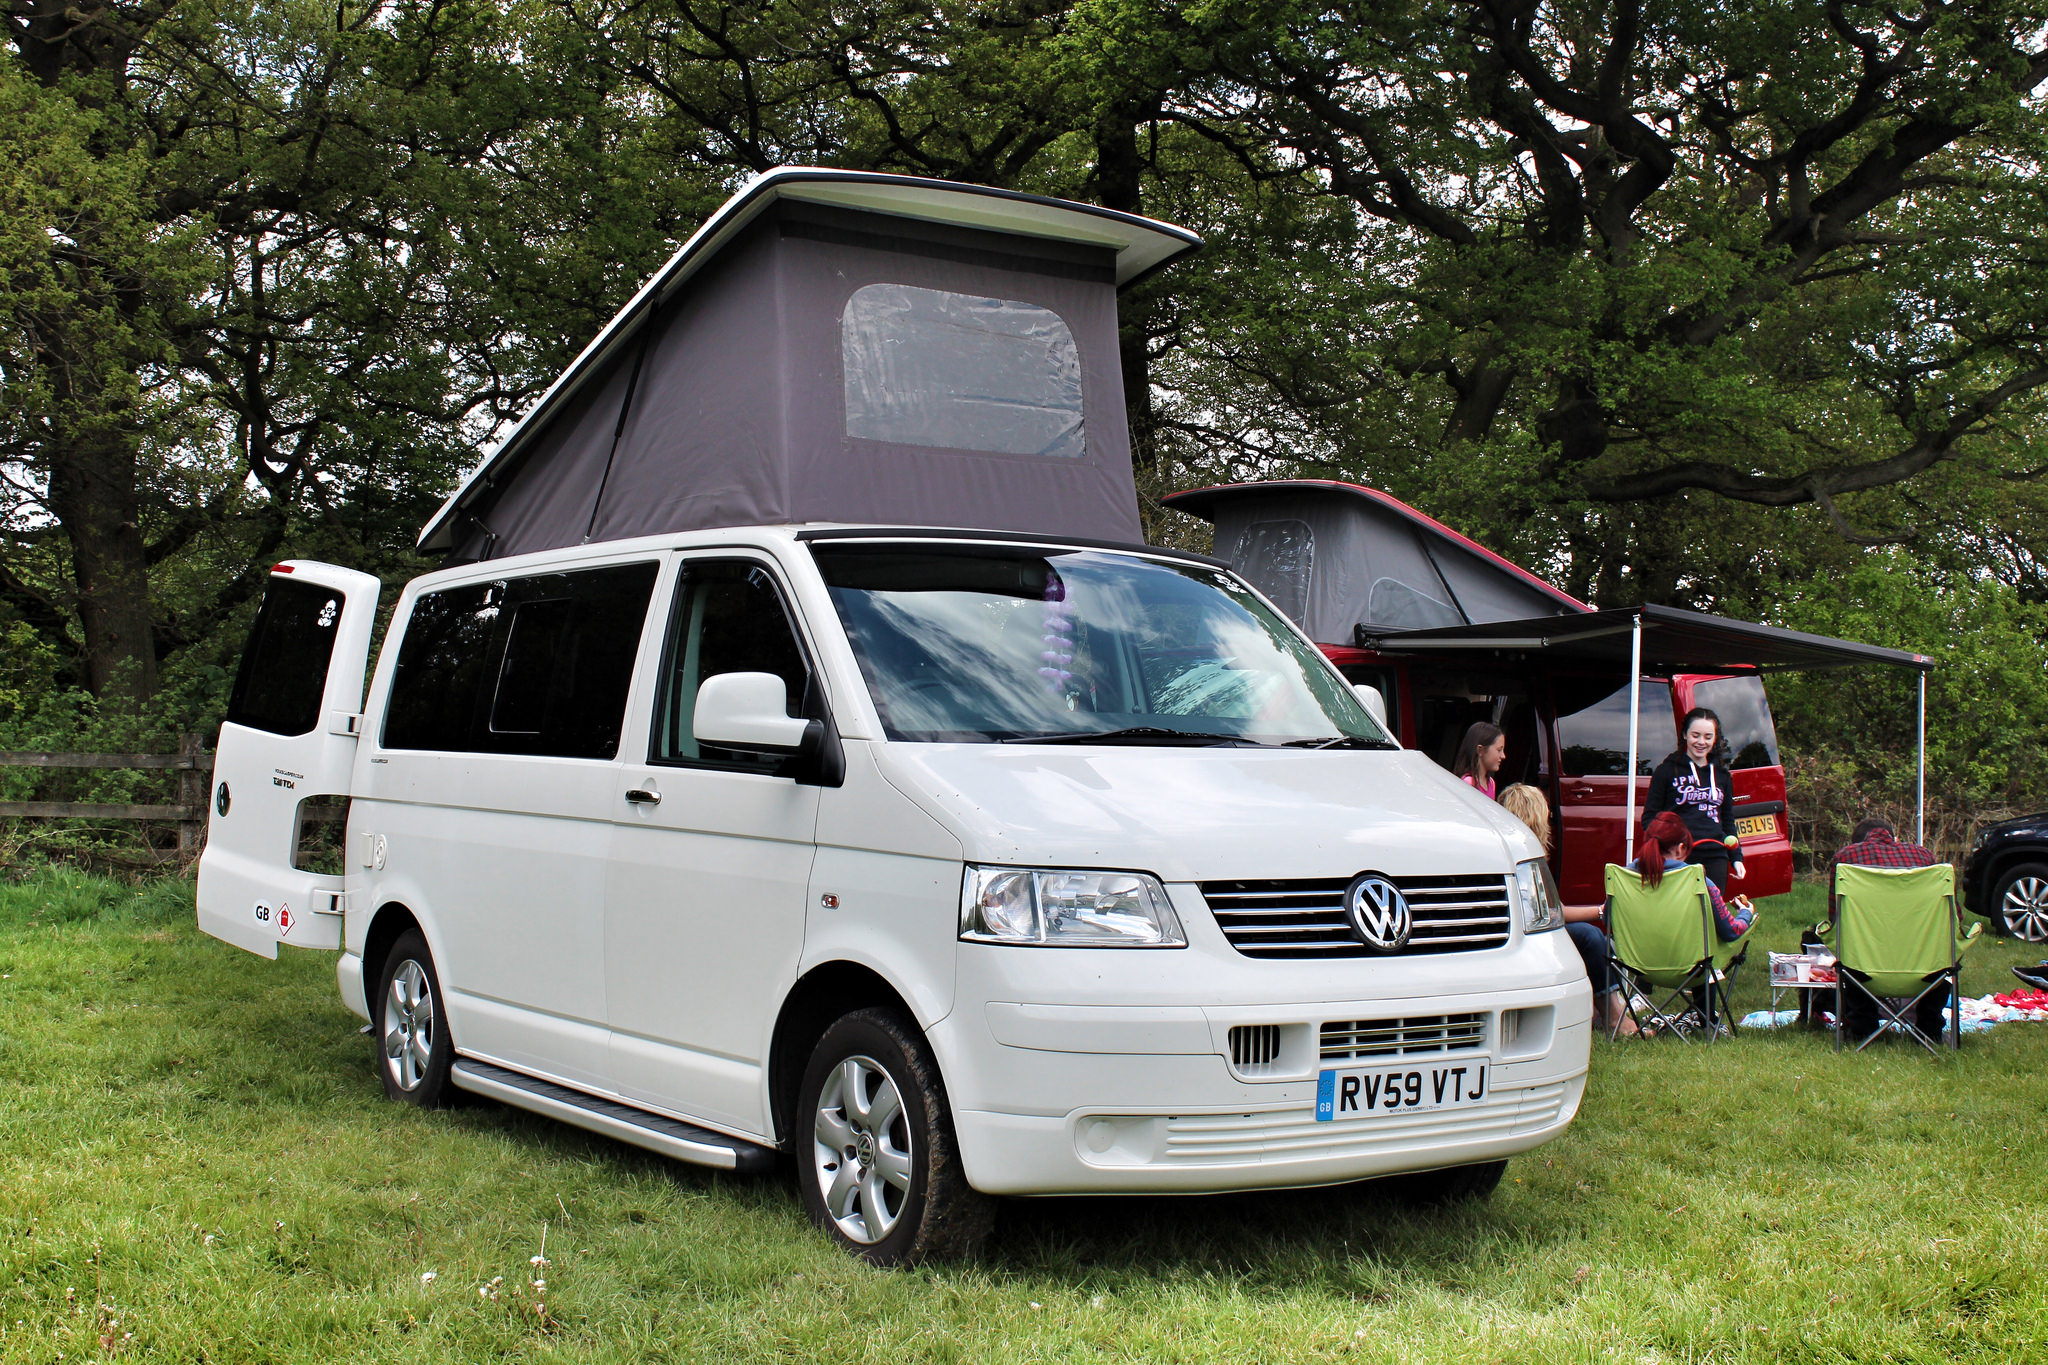 Vw T5 Campervan With Pop Top Roof